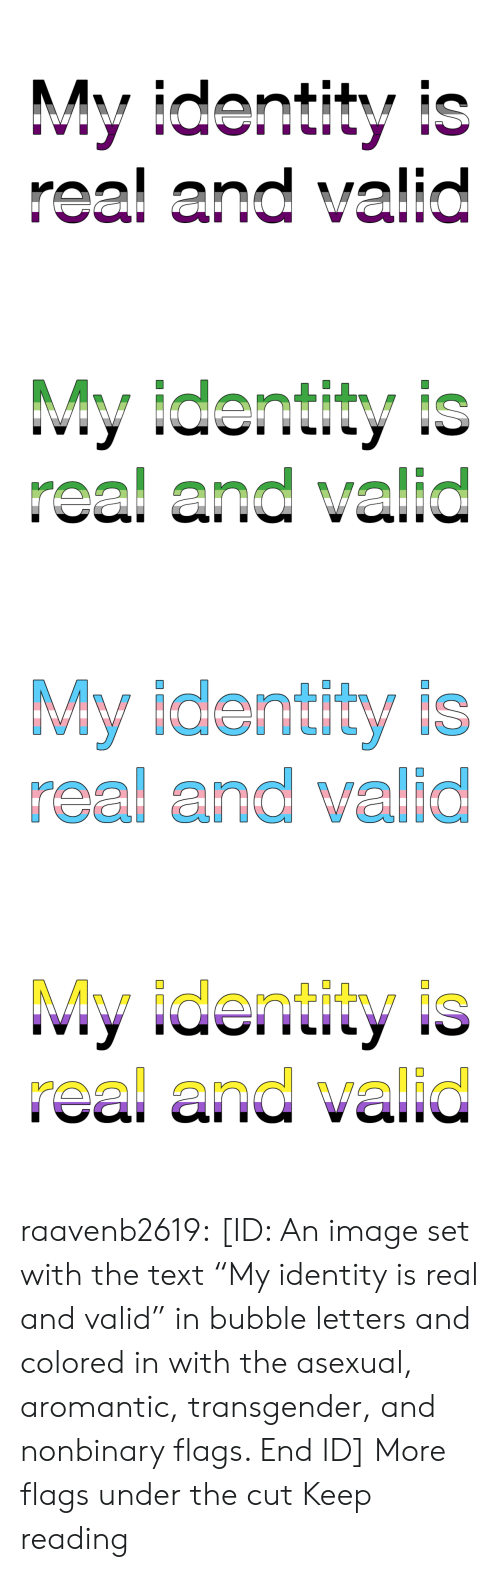 "identity: My identity is  real and valid   My identity is  real and valid   My identity is  real and valid   My identity is  real and valid raavenb2619:  [ID: An image set with the text ""My identity is real and valid"" in bubble letters and colored in with the asexual, aromantic, transgender, and nonbinary flags. End ID]  More flags under the cut  Keep reading"